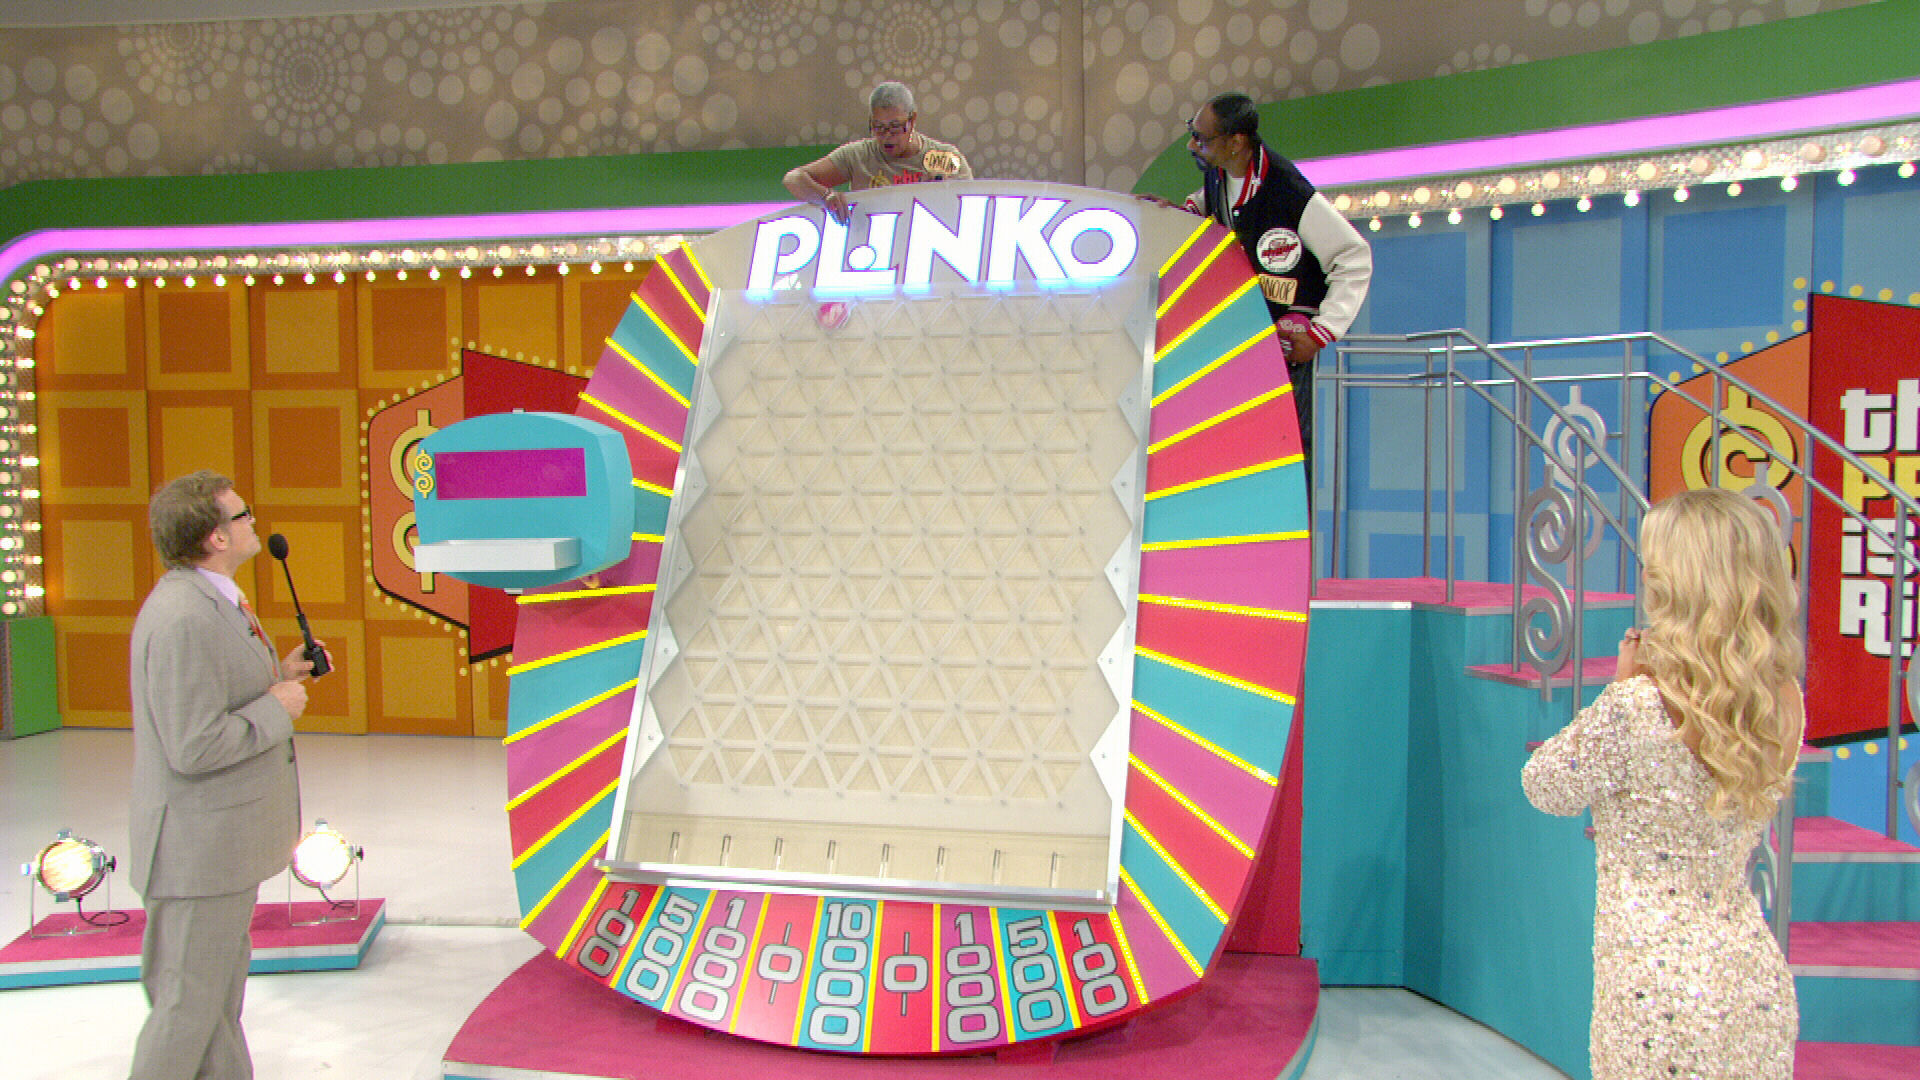 Snoop Dogg & Plinko